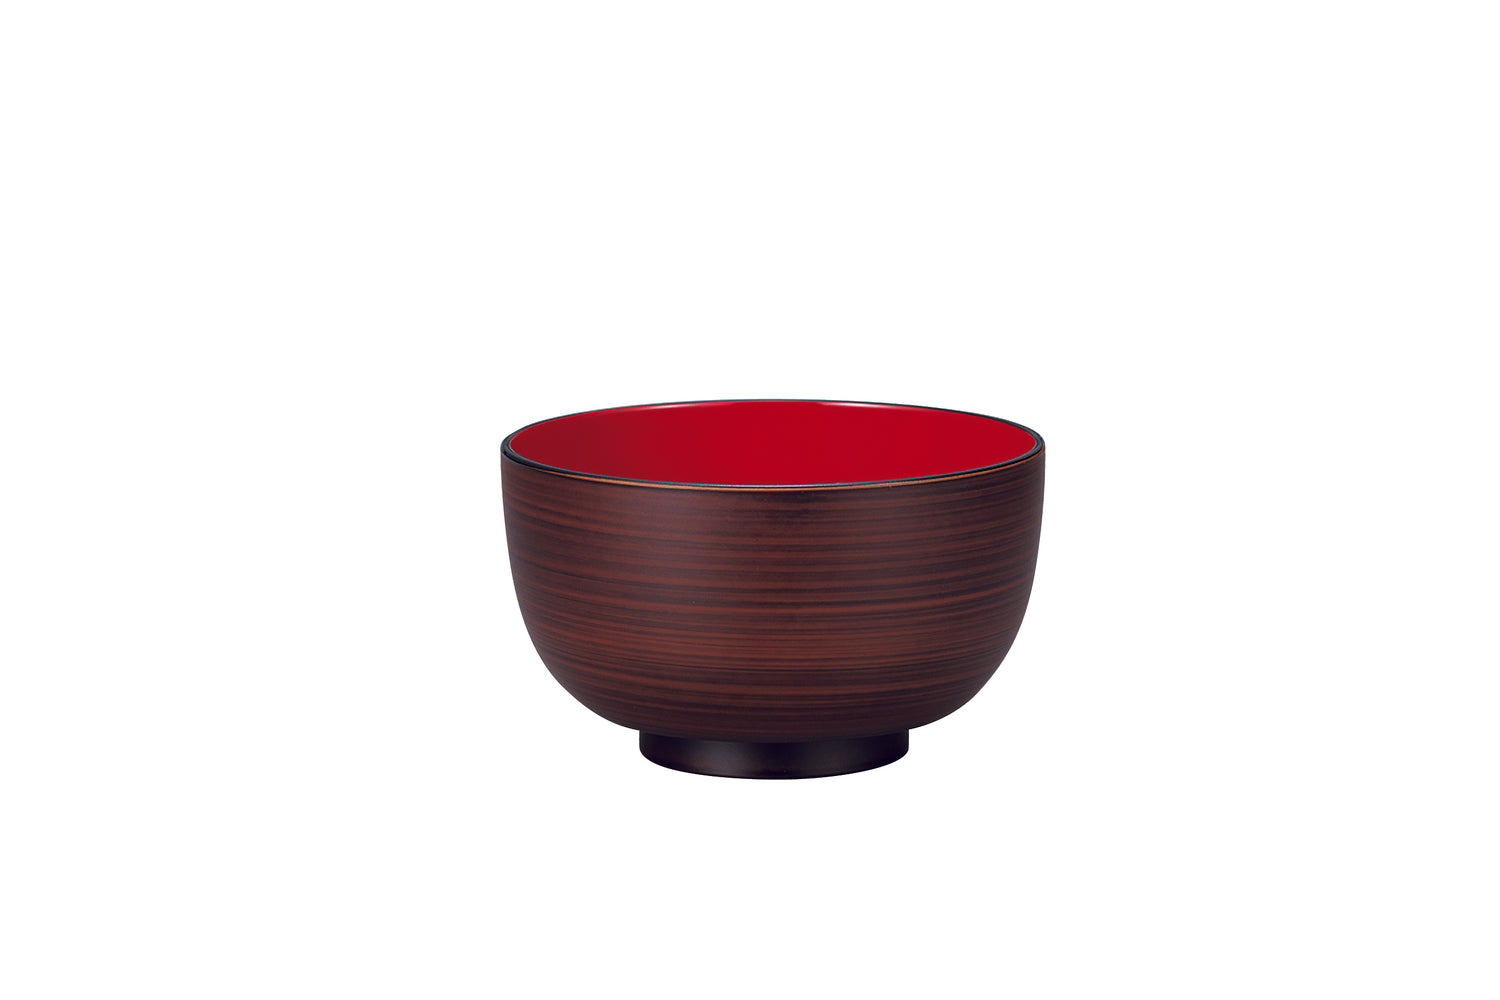 Motenashi Wafu Bowl | Brown by Hakoya - Bento&co Japanese Bento Lunch Boxes and Kitchenware Specialists